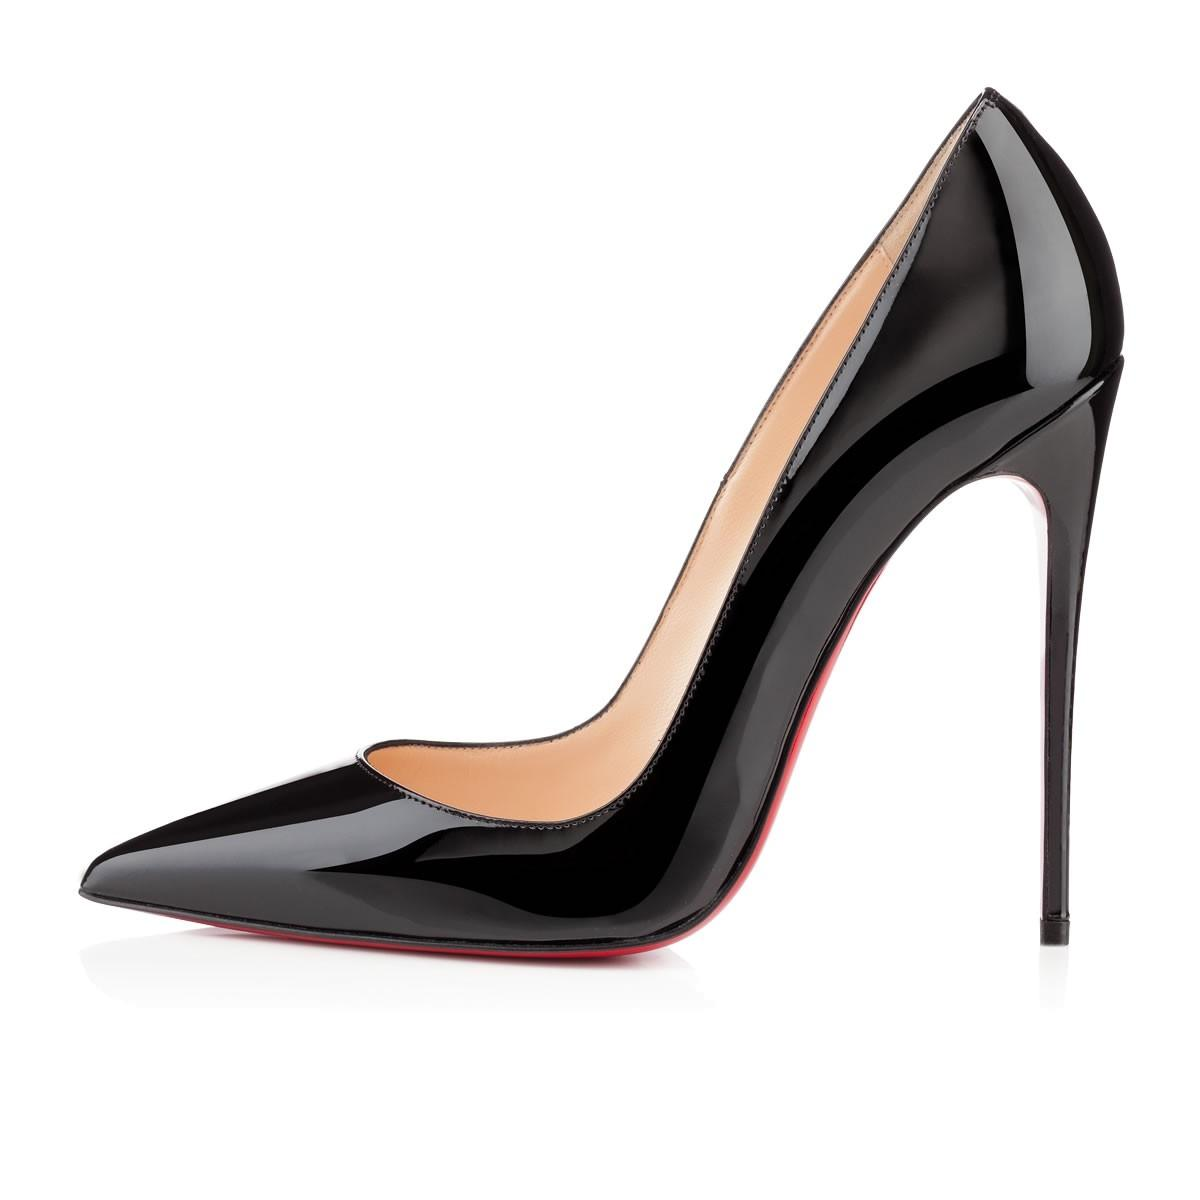 27a12fa7b Christian Louboutin Black Black Black New So Kate 120 Patent Leather 39  Pumps Size US 9 Regular (M